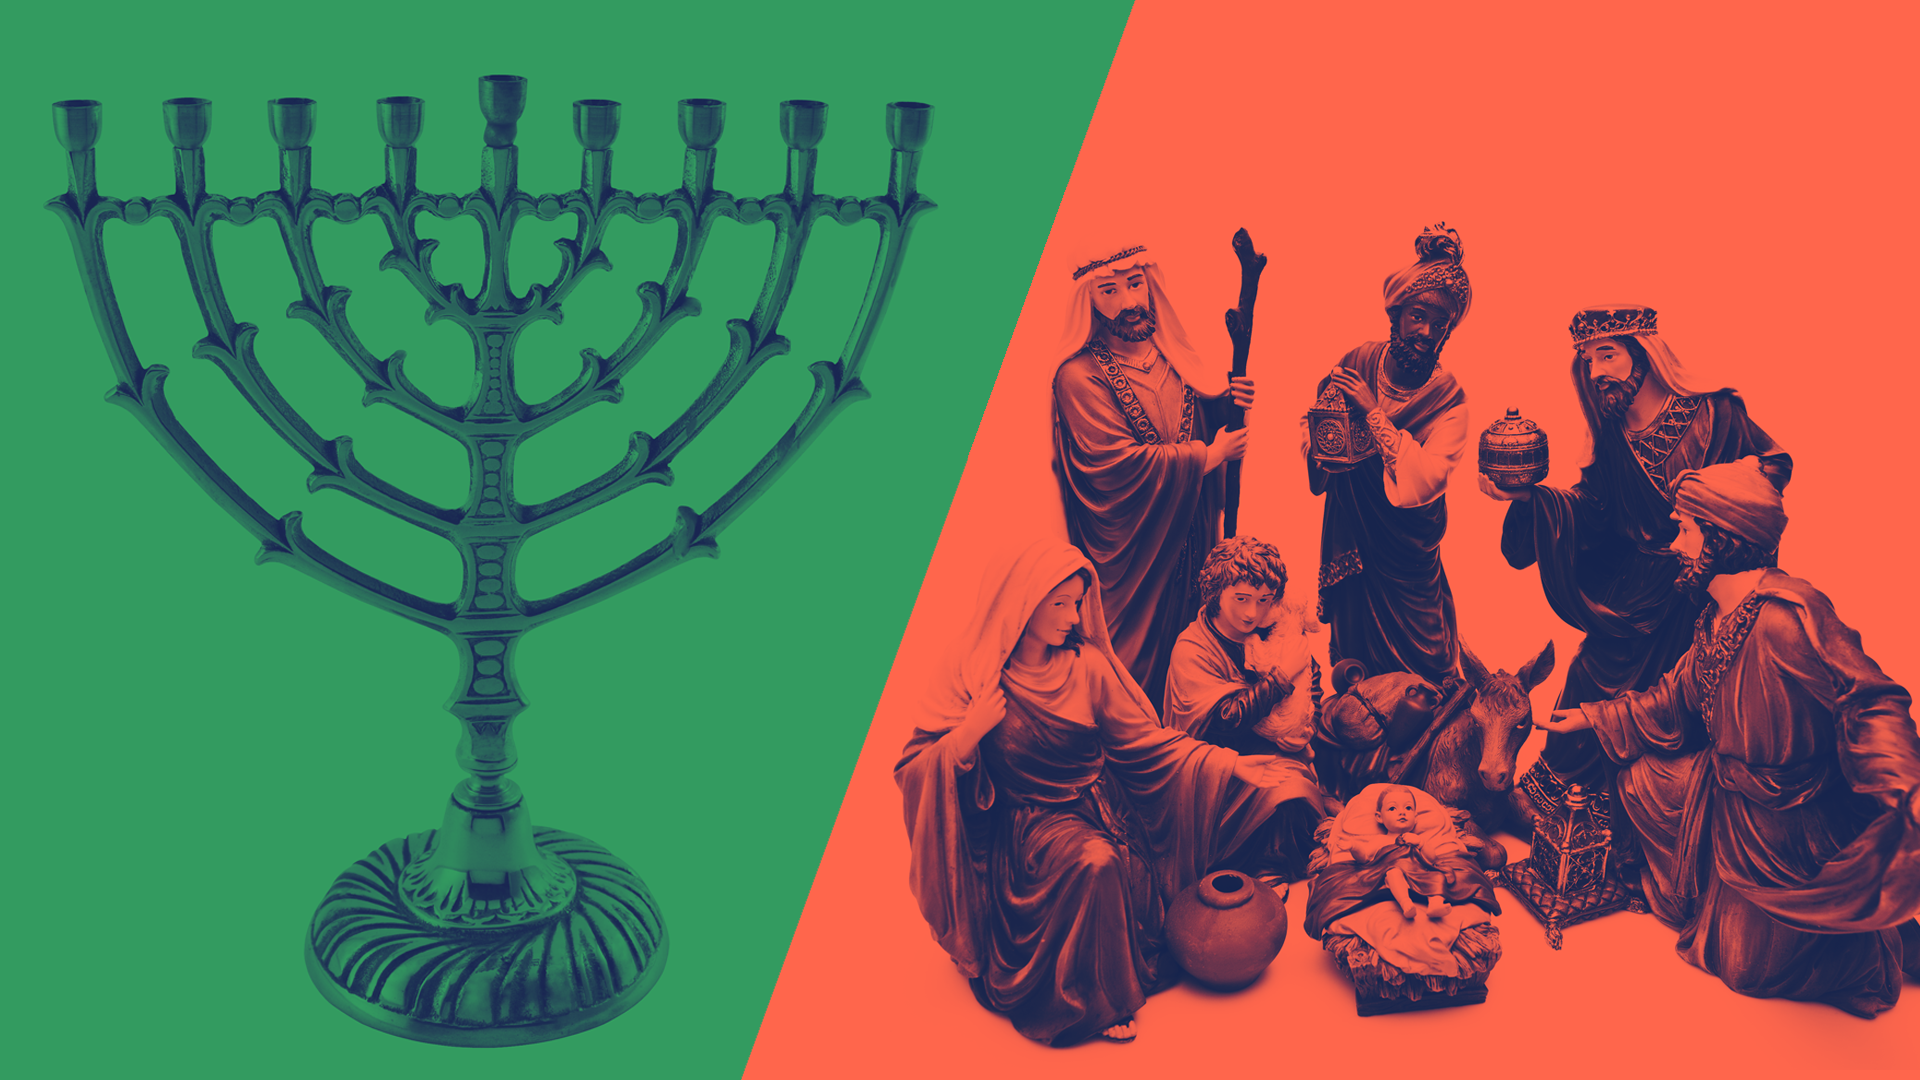 Celebrating Hanukkah where the dominant winter holiday isn't Christmas